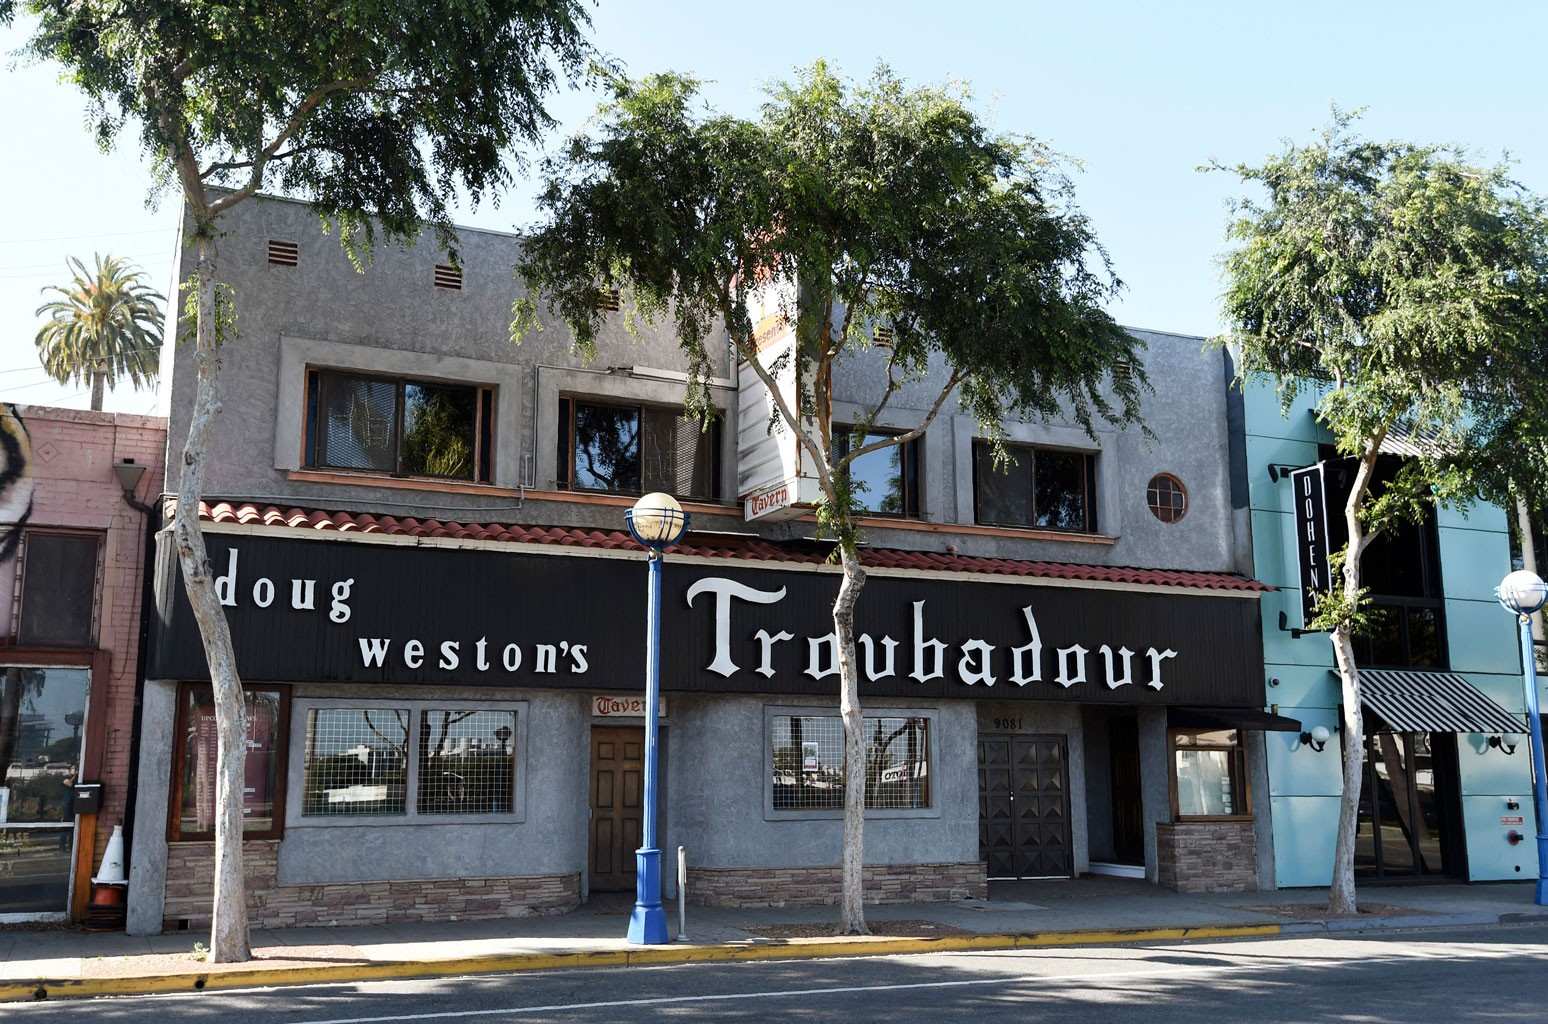 The Troubadour, 9:30 Club & More Launch NFT Fundraiser With Exclusive Perks